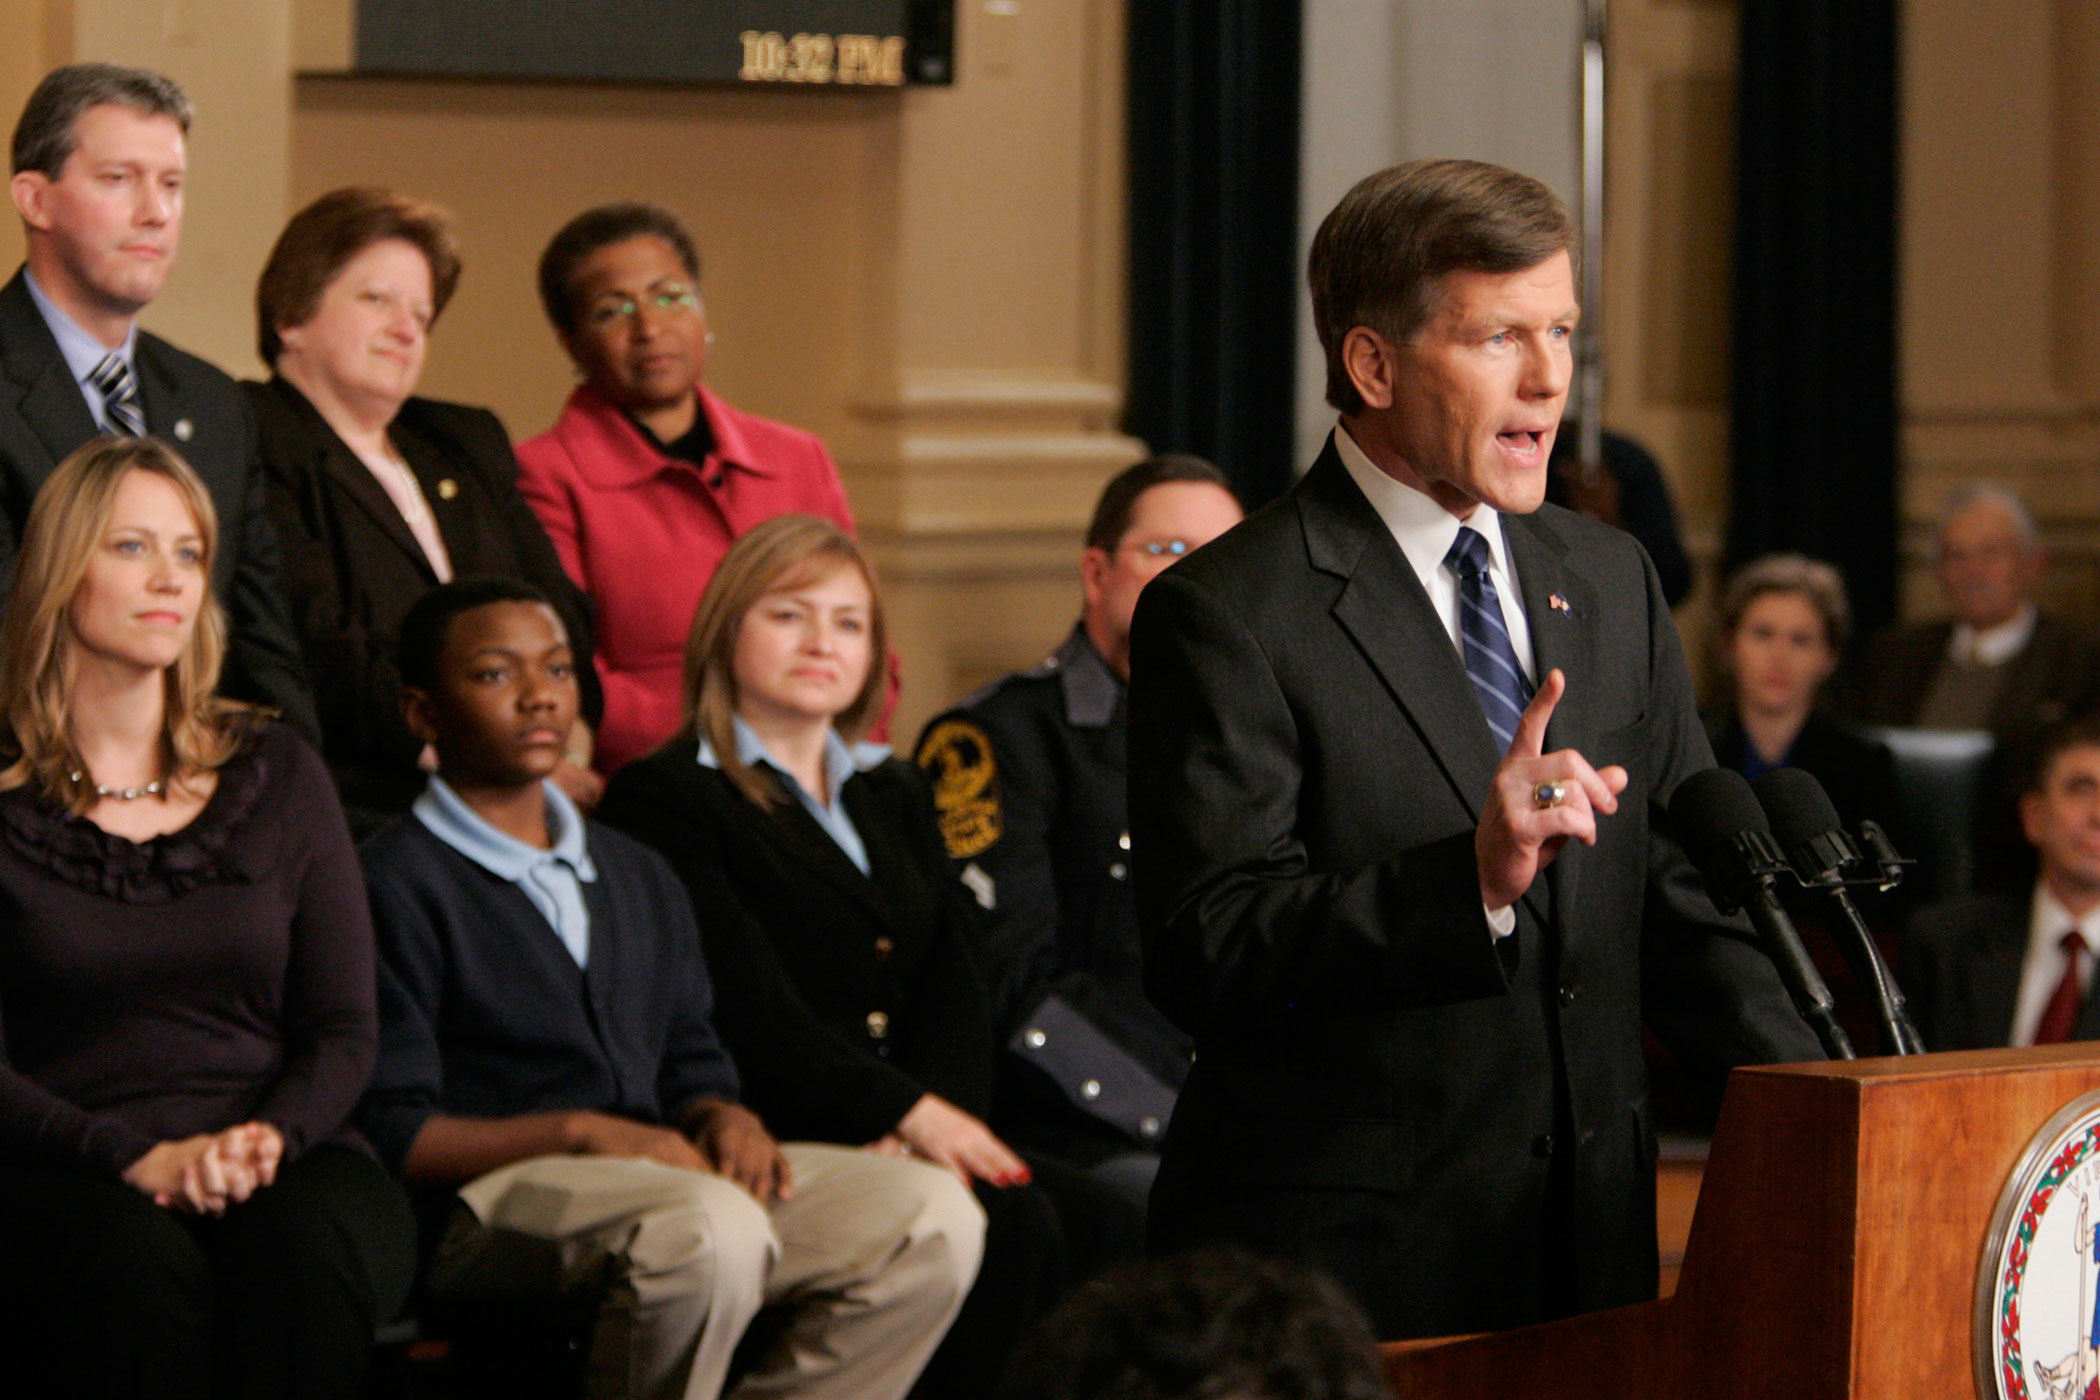 Virginia Gov. Bob McDonnell delivers the Republican Response to the State of the Union in the Virginia House of Delegates chambers at the Capitol in Richmond, Va., on, Jan. 27, 2010.